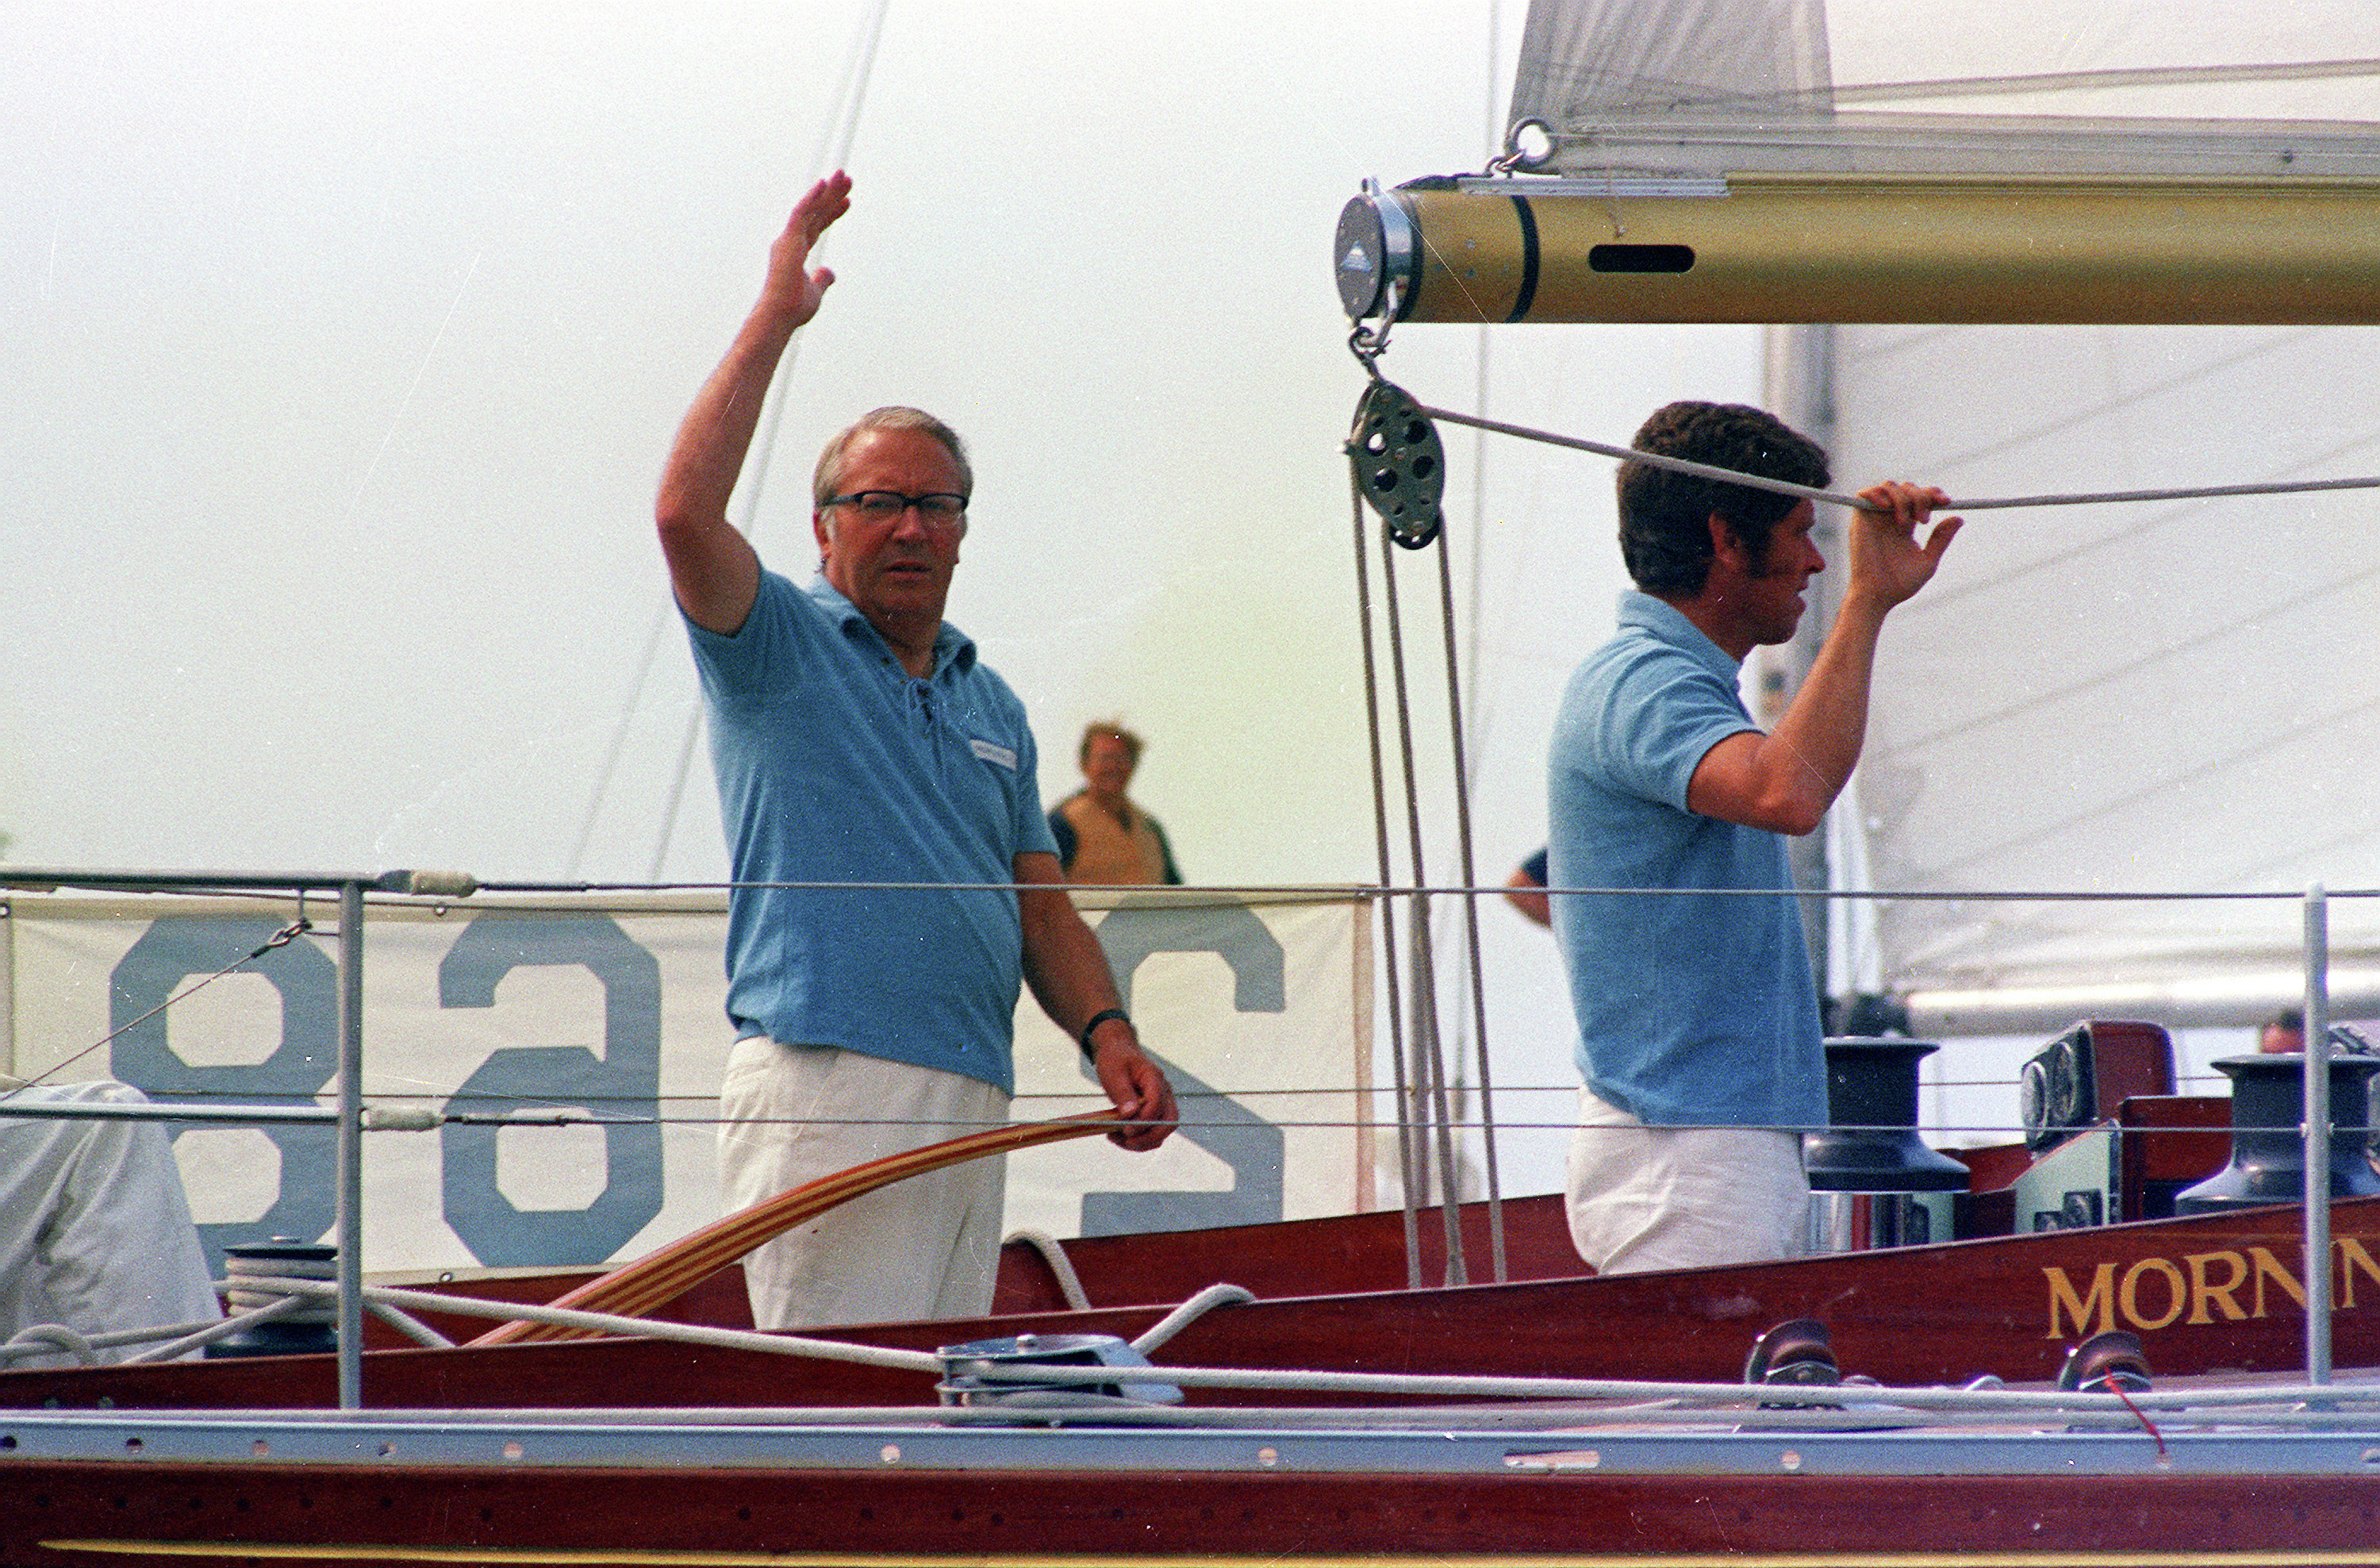 Britain's Prime Minister Edward Heath waves while at the helm of his yacht 'Morning Cloud' during the Admiral's Cup Yacht Race, Cowes, Isle of Wight, England, July 30, 1971